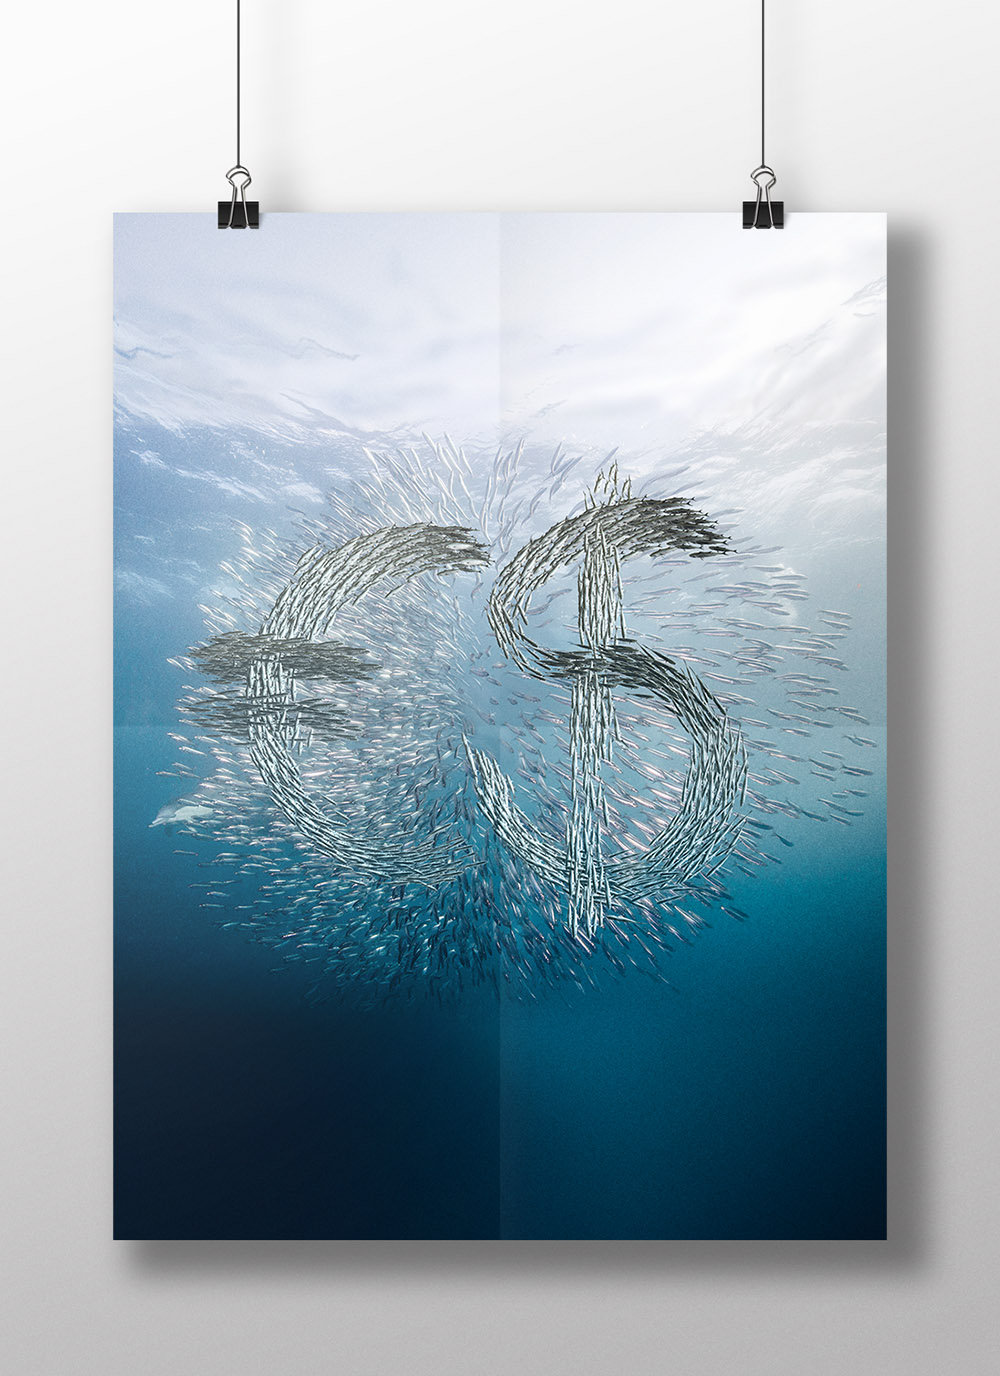 Sucden_fish_poster, Sucden Financial, Form Advertising, brand awareness, advertising, poster